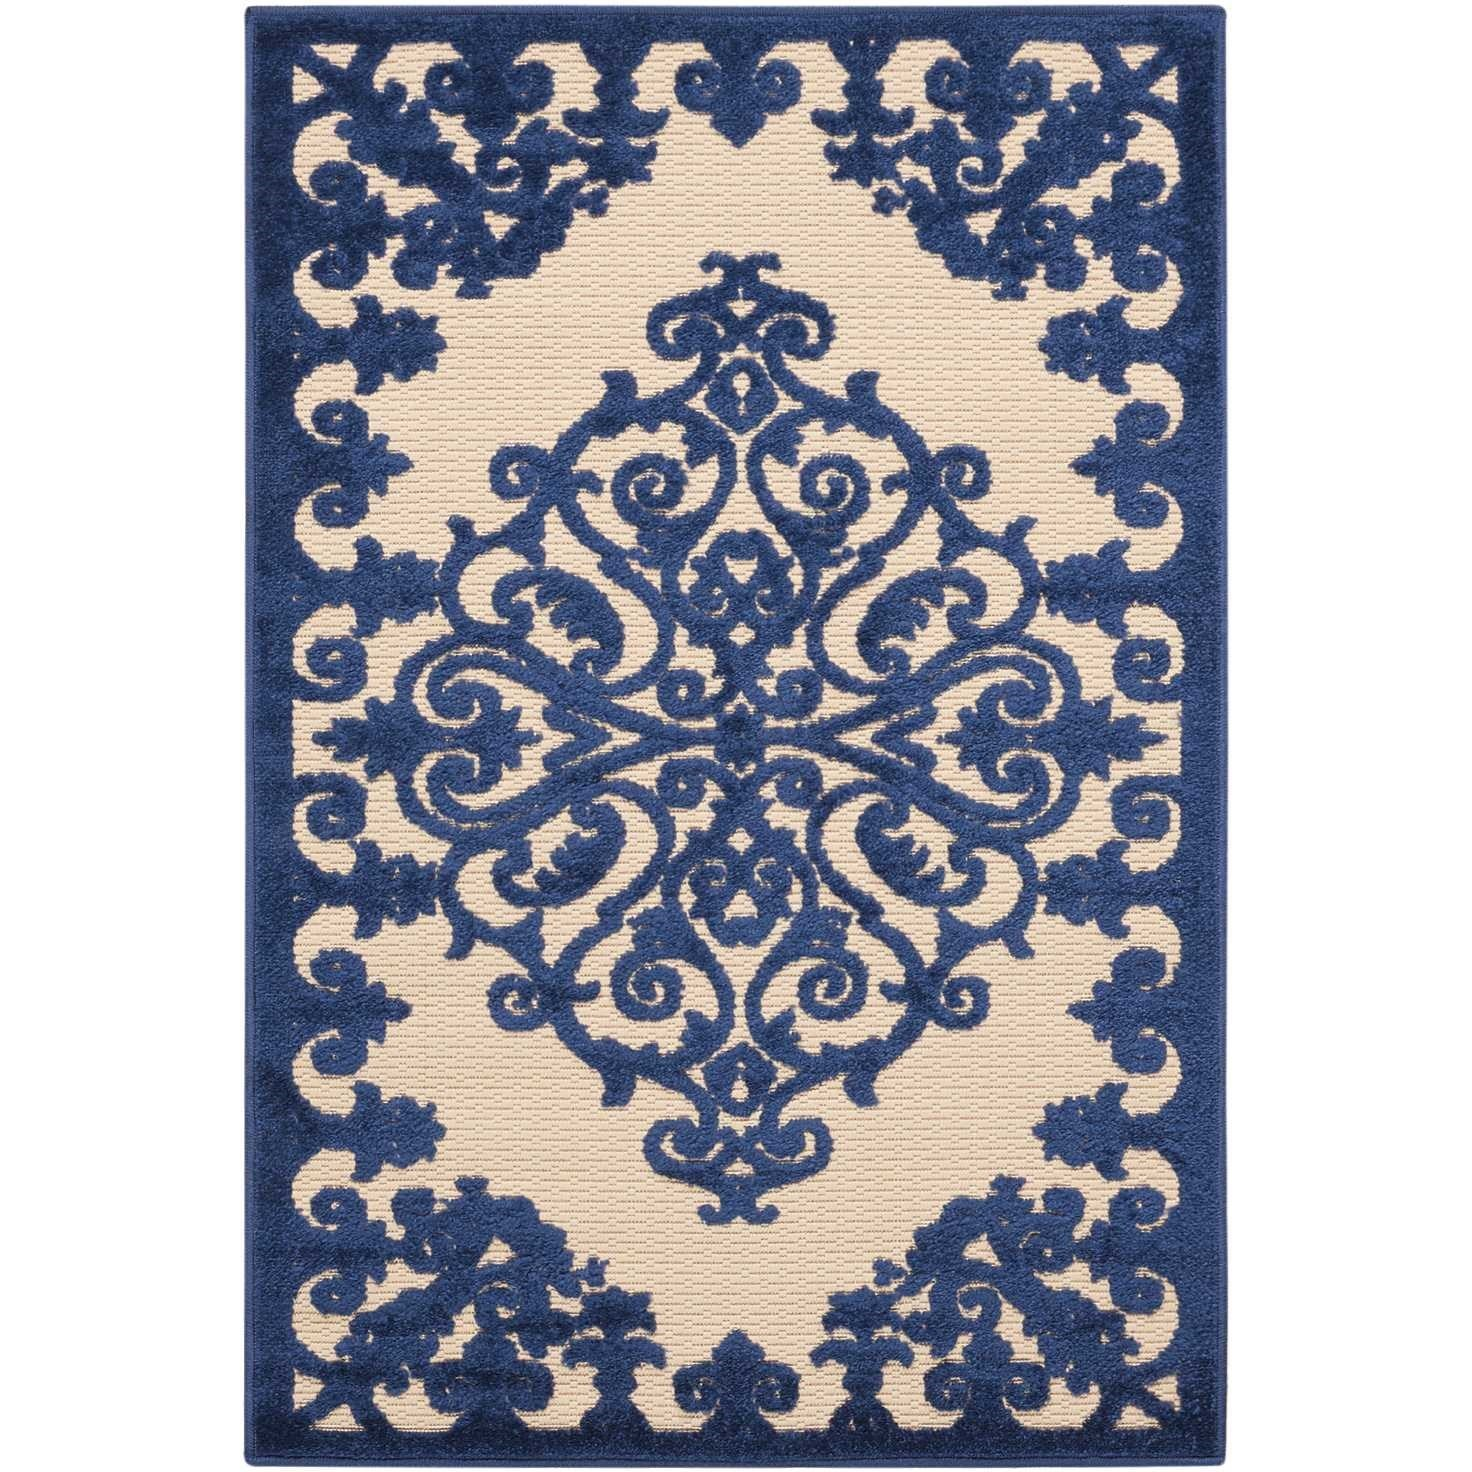 """Aloha 2'8"""" x 4' Navy Rectangle Rug by Nourison at Home Collections Furniture"""